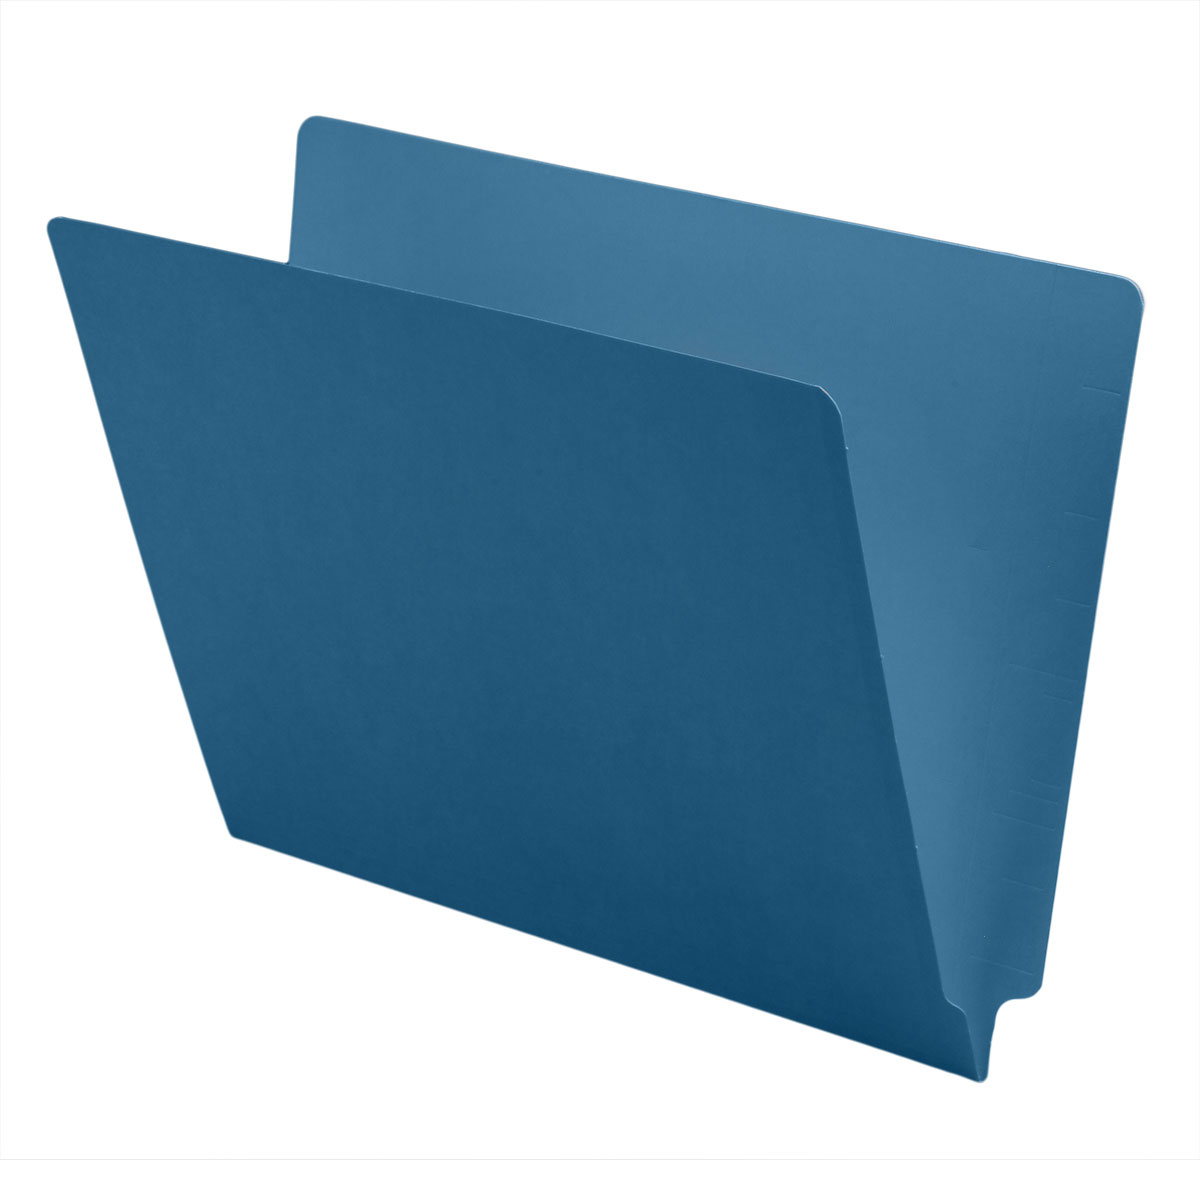 S-1600-BLU - 14 pt Color Folders, Full Cut 2-Ply End Tab, Letter Size, Blue (Box of 50)